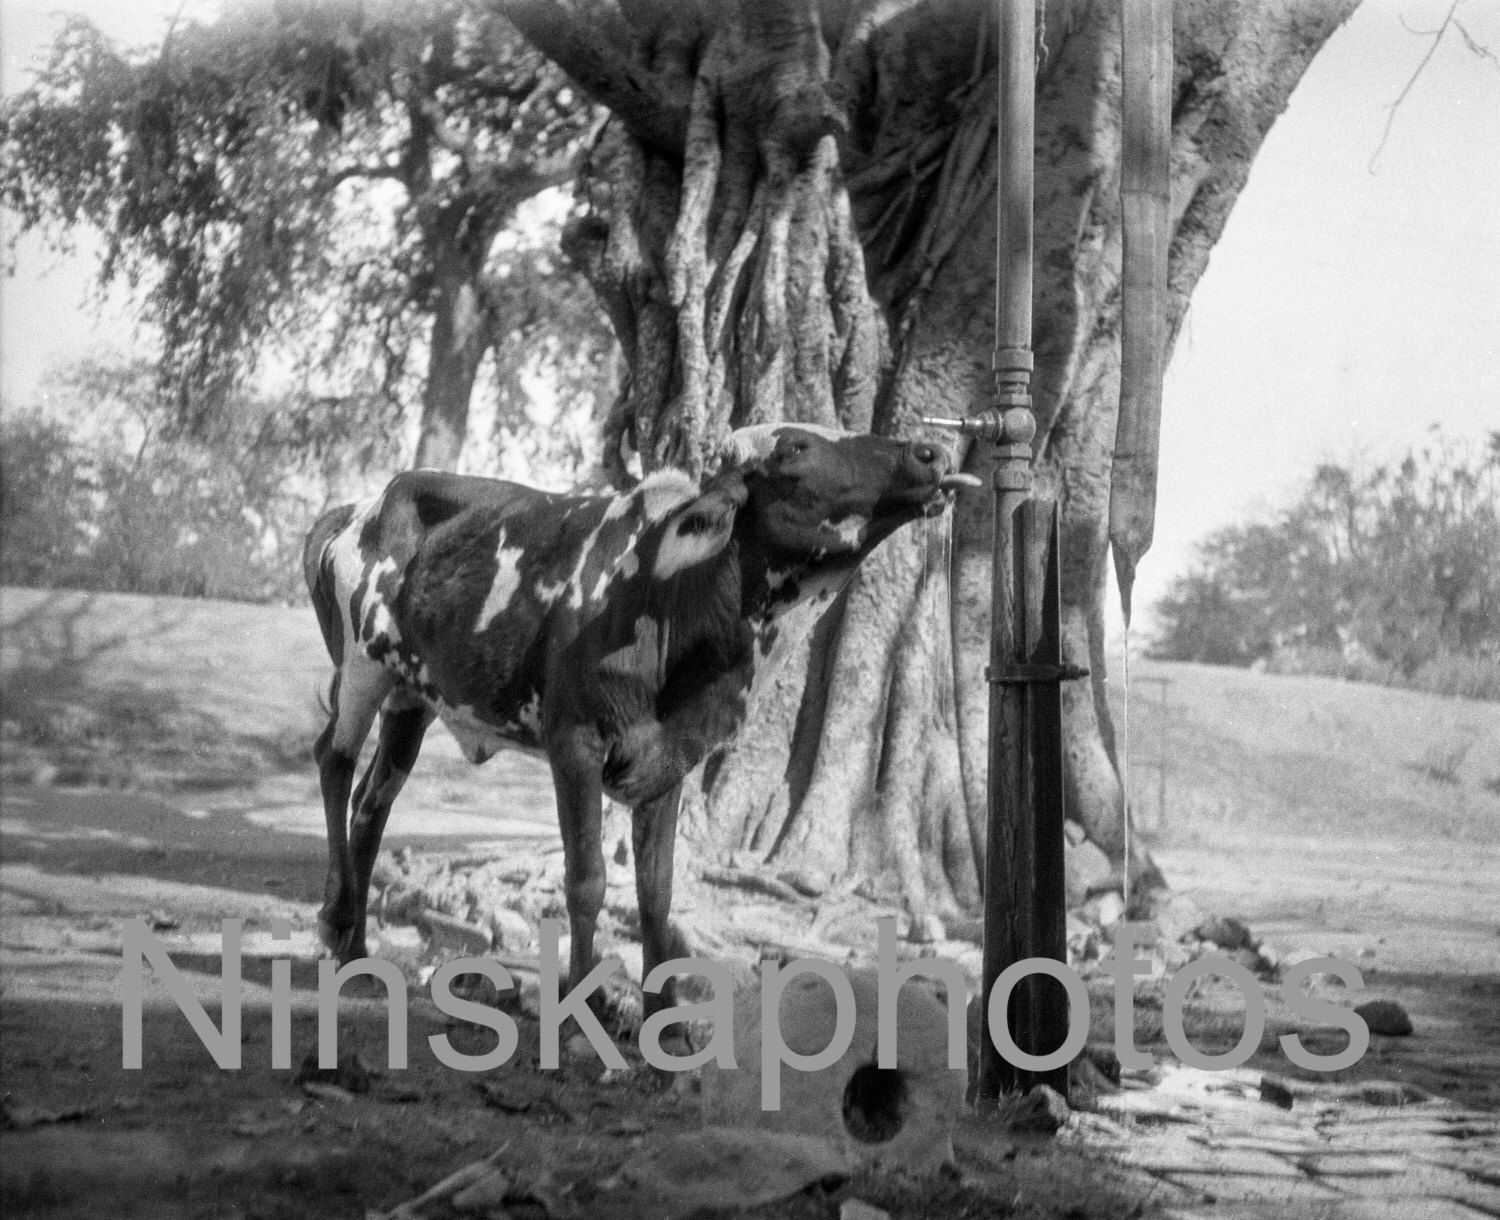 Cow drinking from the tap, Delhi, India, by J. Dearden Holmes, 1920s antique photo reprint, vintage photo, Animal photo, animal art by Ninskaphotos on Etsy https://www.etsy.com/uk/listing/385180718/cow-drinking-from-the-tap-delhi-india-by